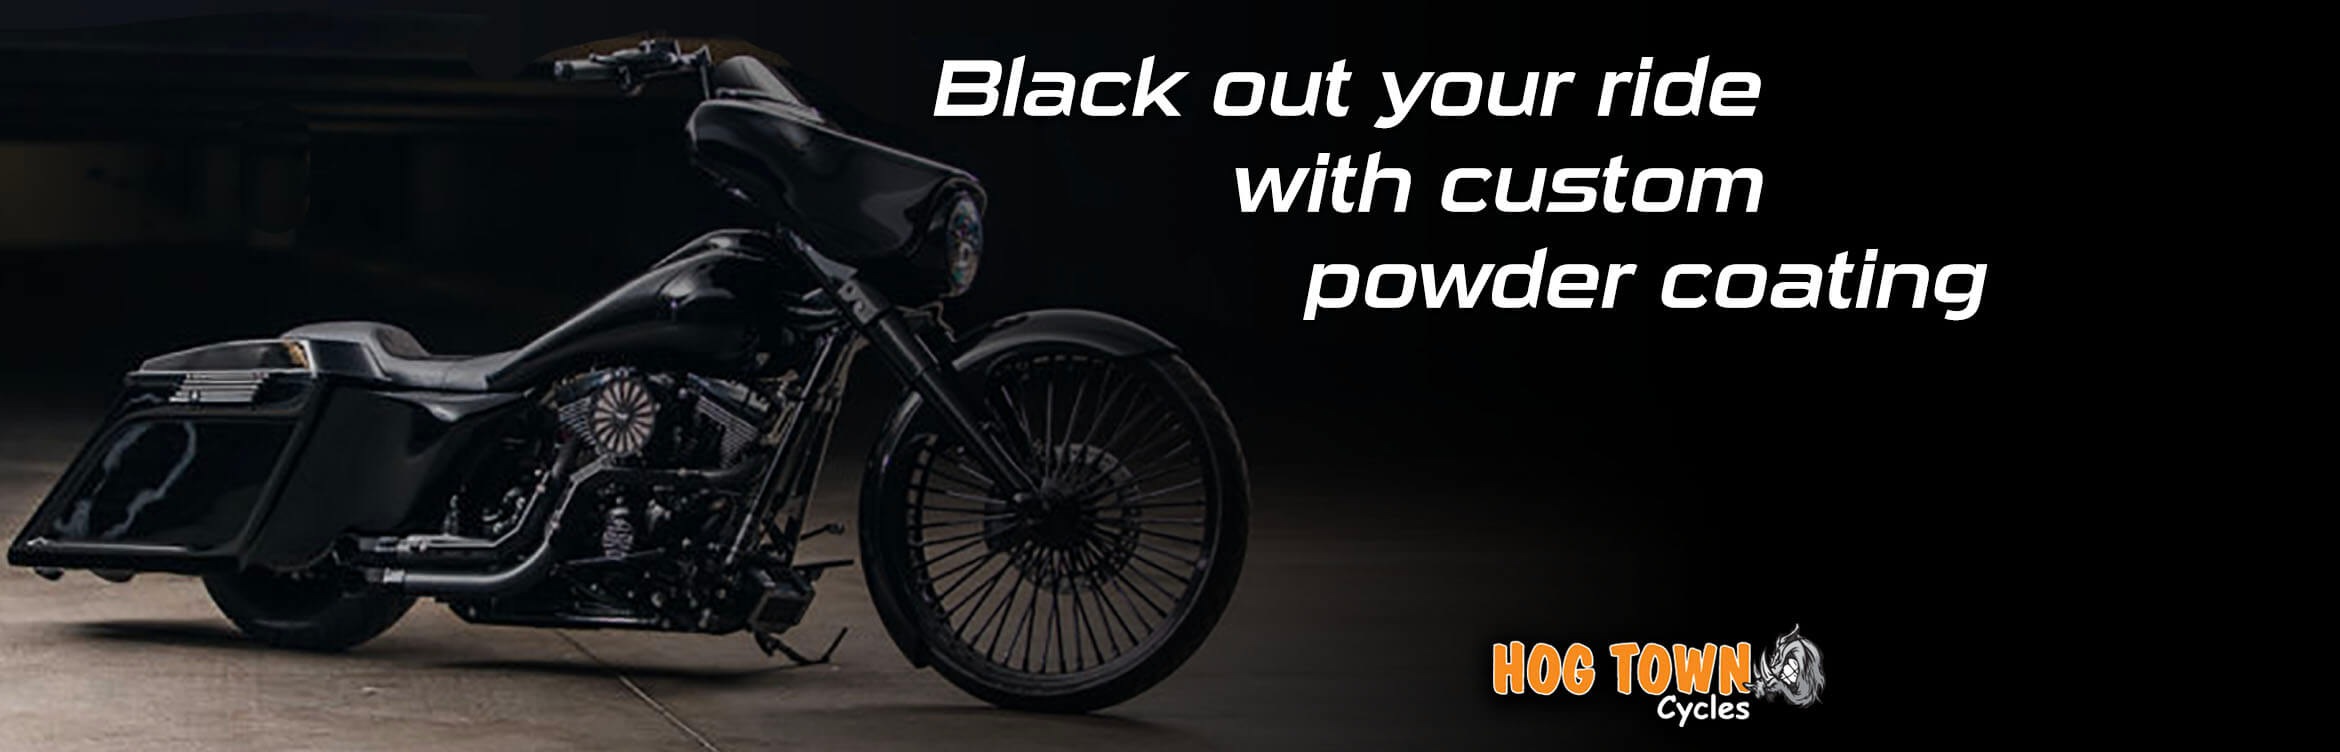 Black out your Harley-Davidson motorcycle at Hogtown Cycles